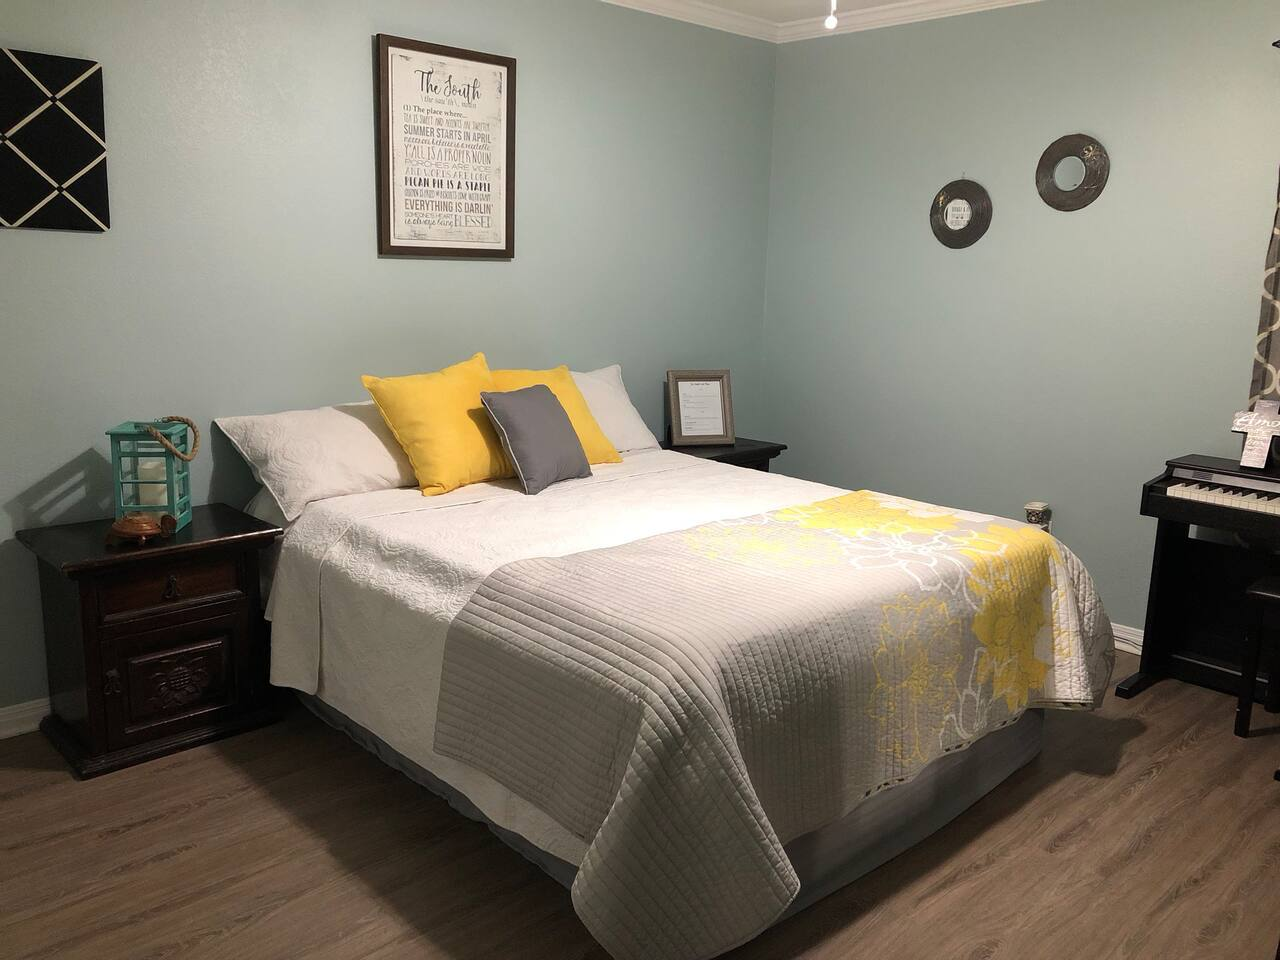 Comfortable and peaceful queen size+ bed for your stay.